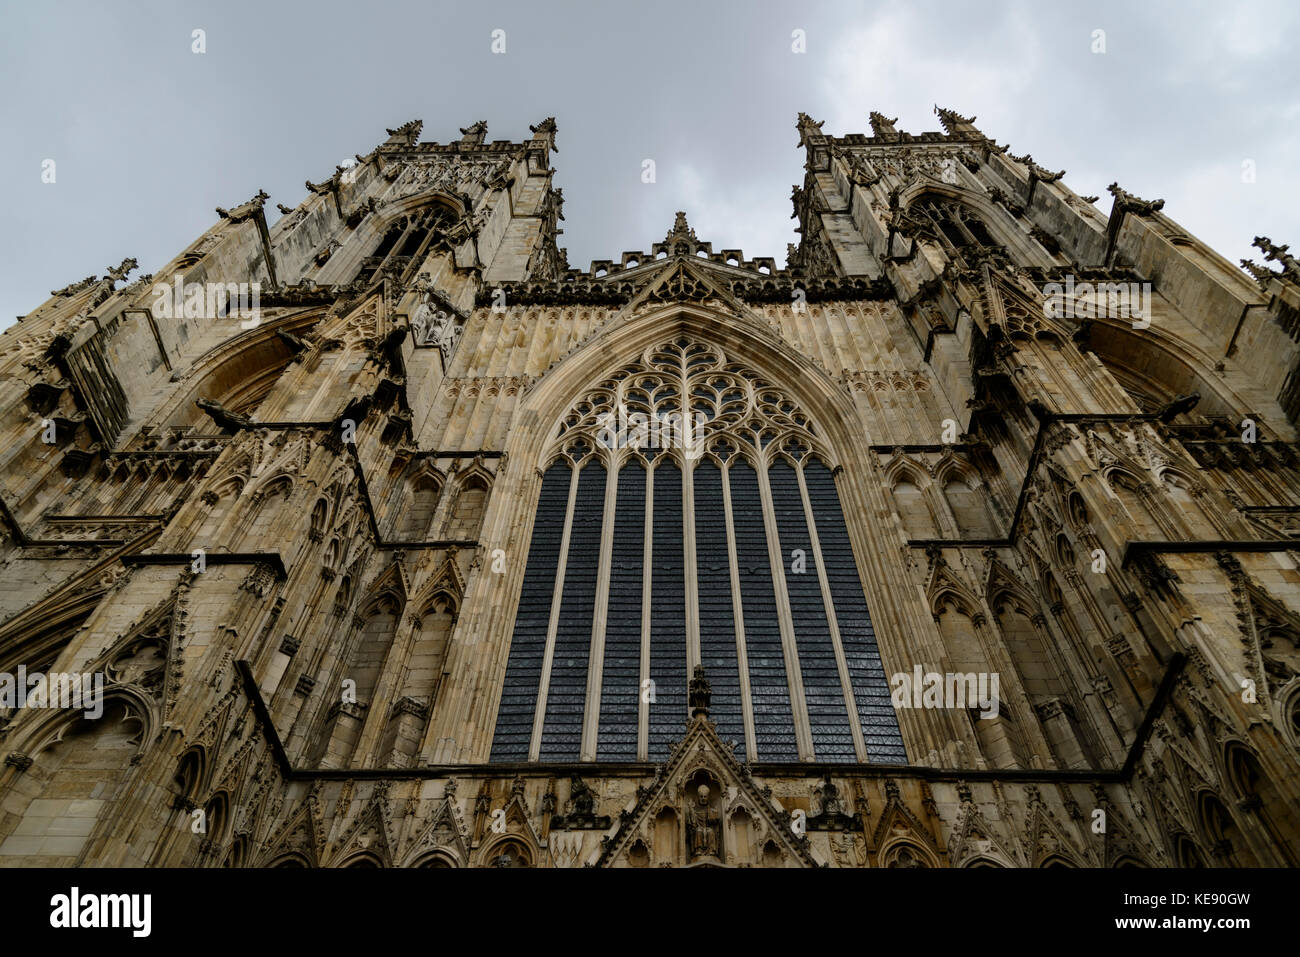 Imposing front of York Minster - Stock Image